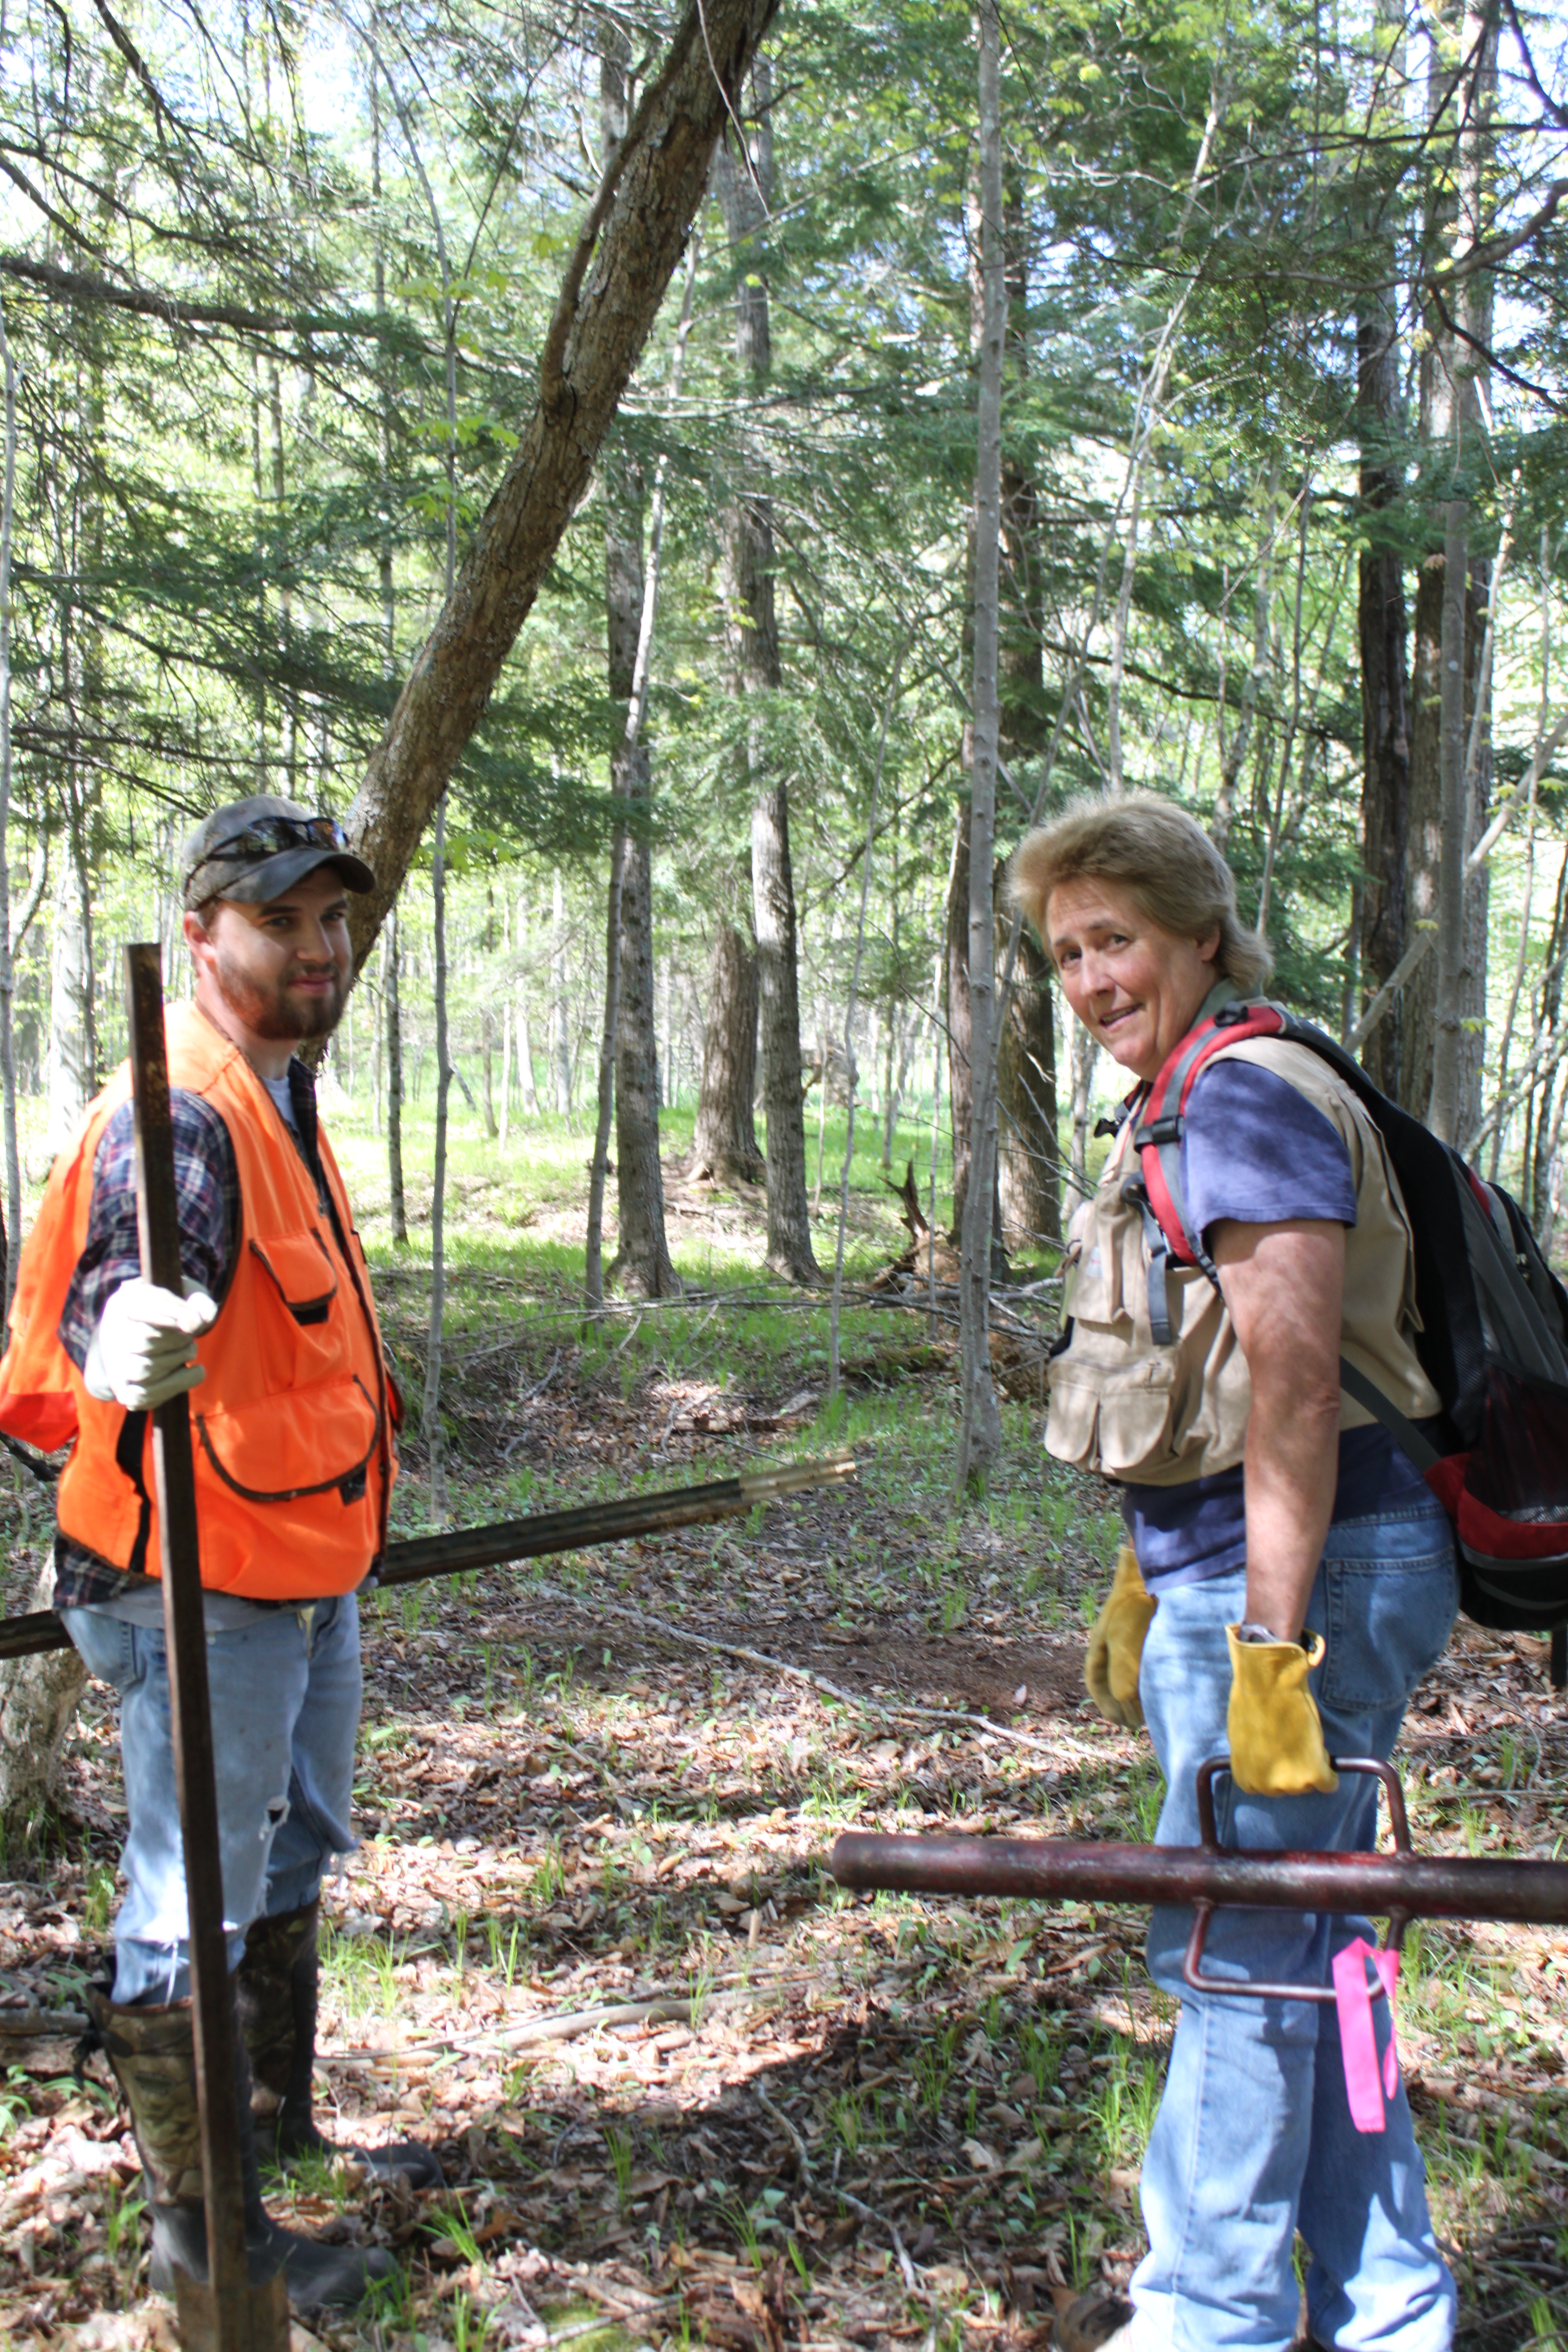 McCullough works with James Wieferich, now a forest health specialist with the Michigan Department of Natural Resources, on EAB research in a forest in Mecosta County.